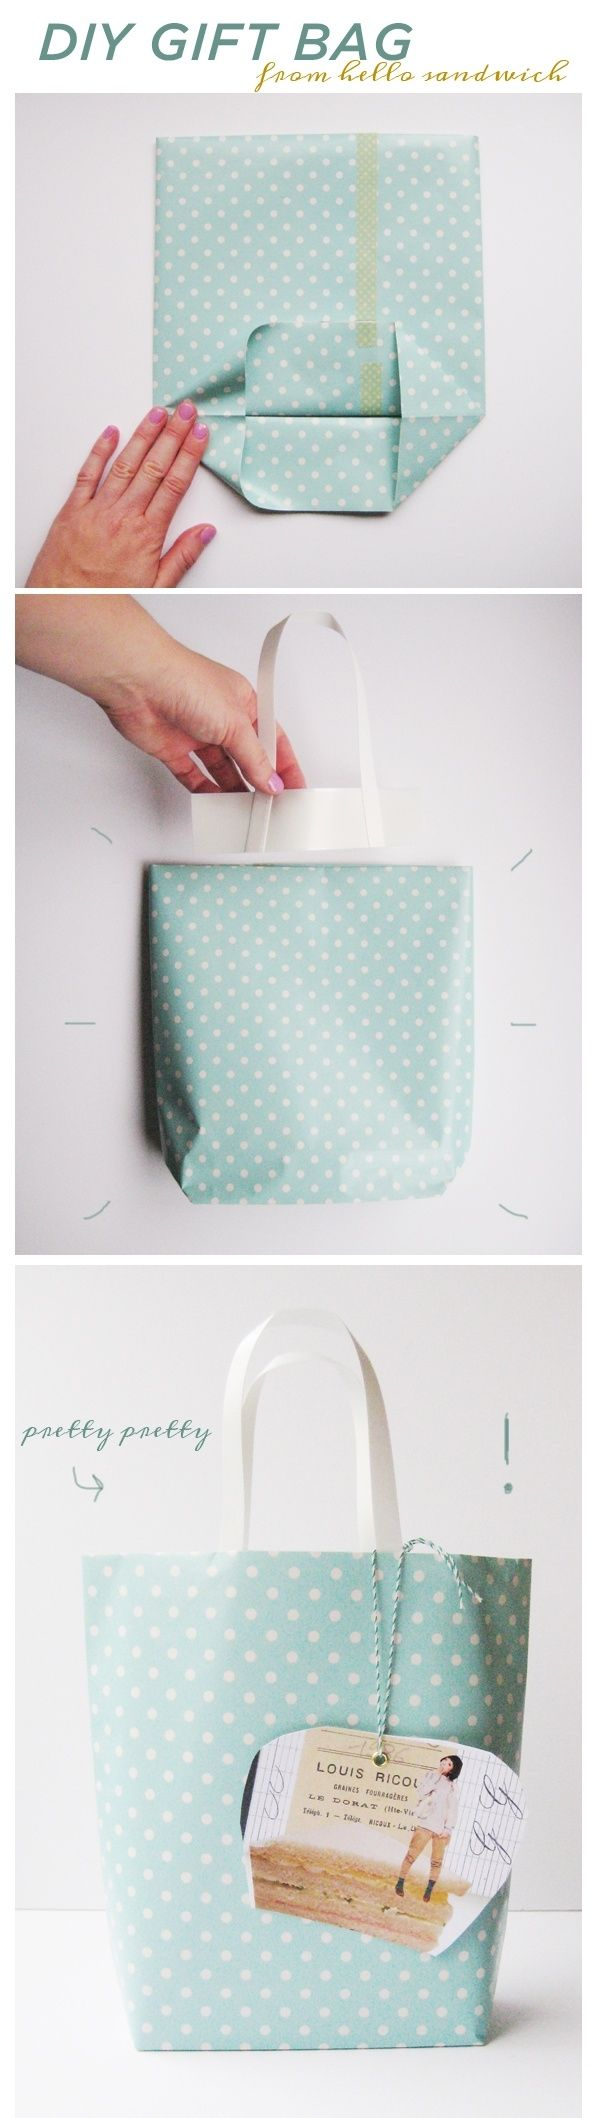 diy gift bag diy crafts presents home made easy crafts craft idea crafts ideas diy ideas diy crafts diy idea do it yourself diy projects gift wrap